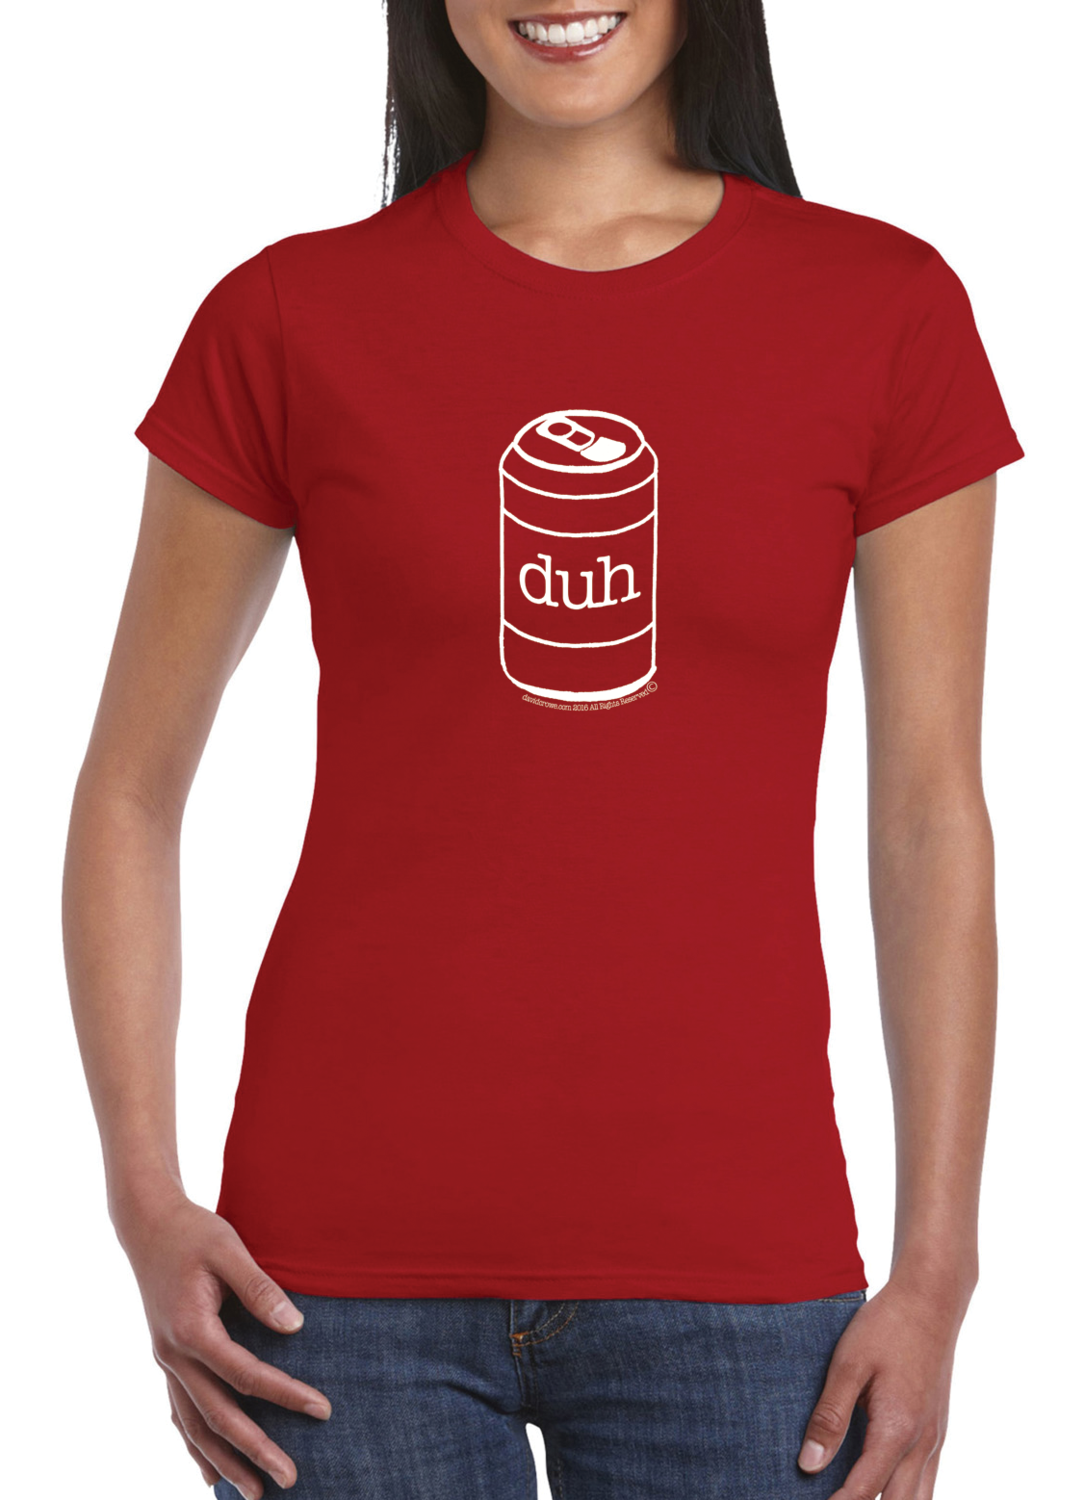 The Can-a-Duh shirt :: Ladies 100% Cotton Softstyle (these run small)